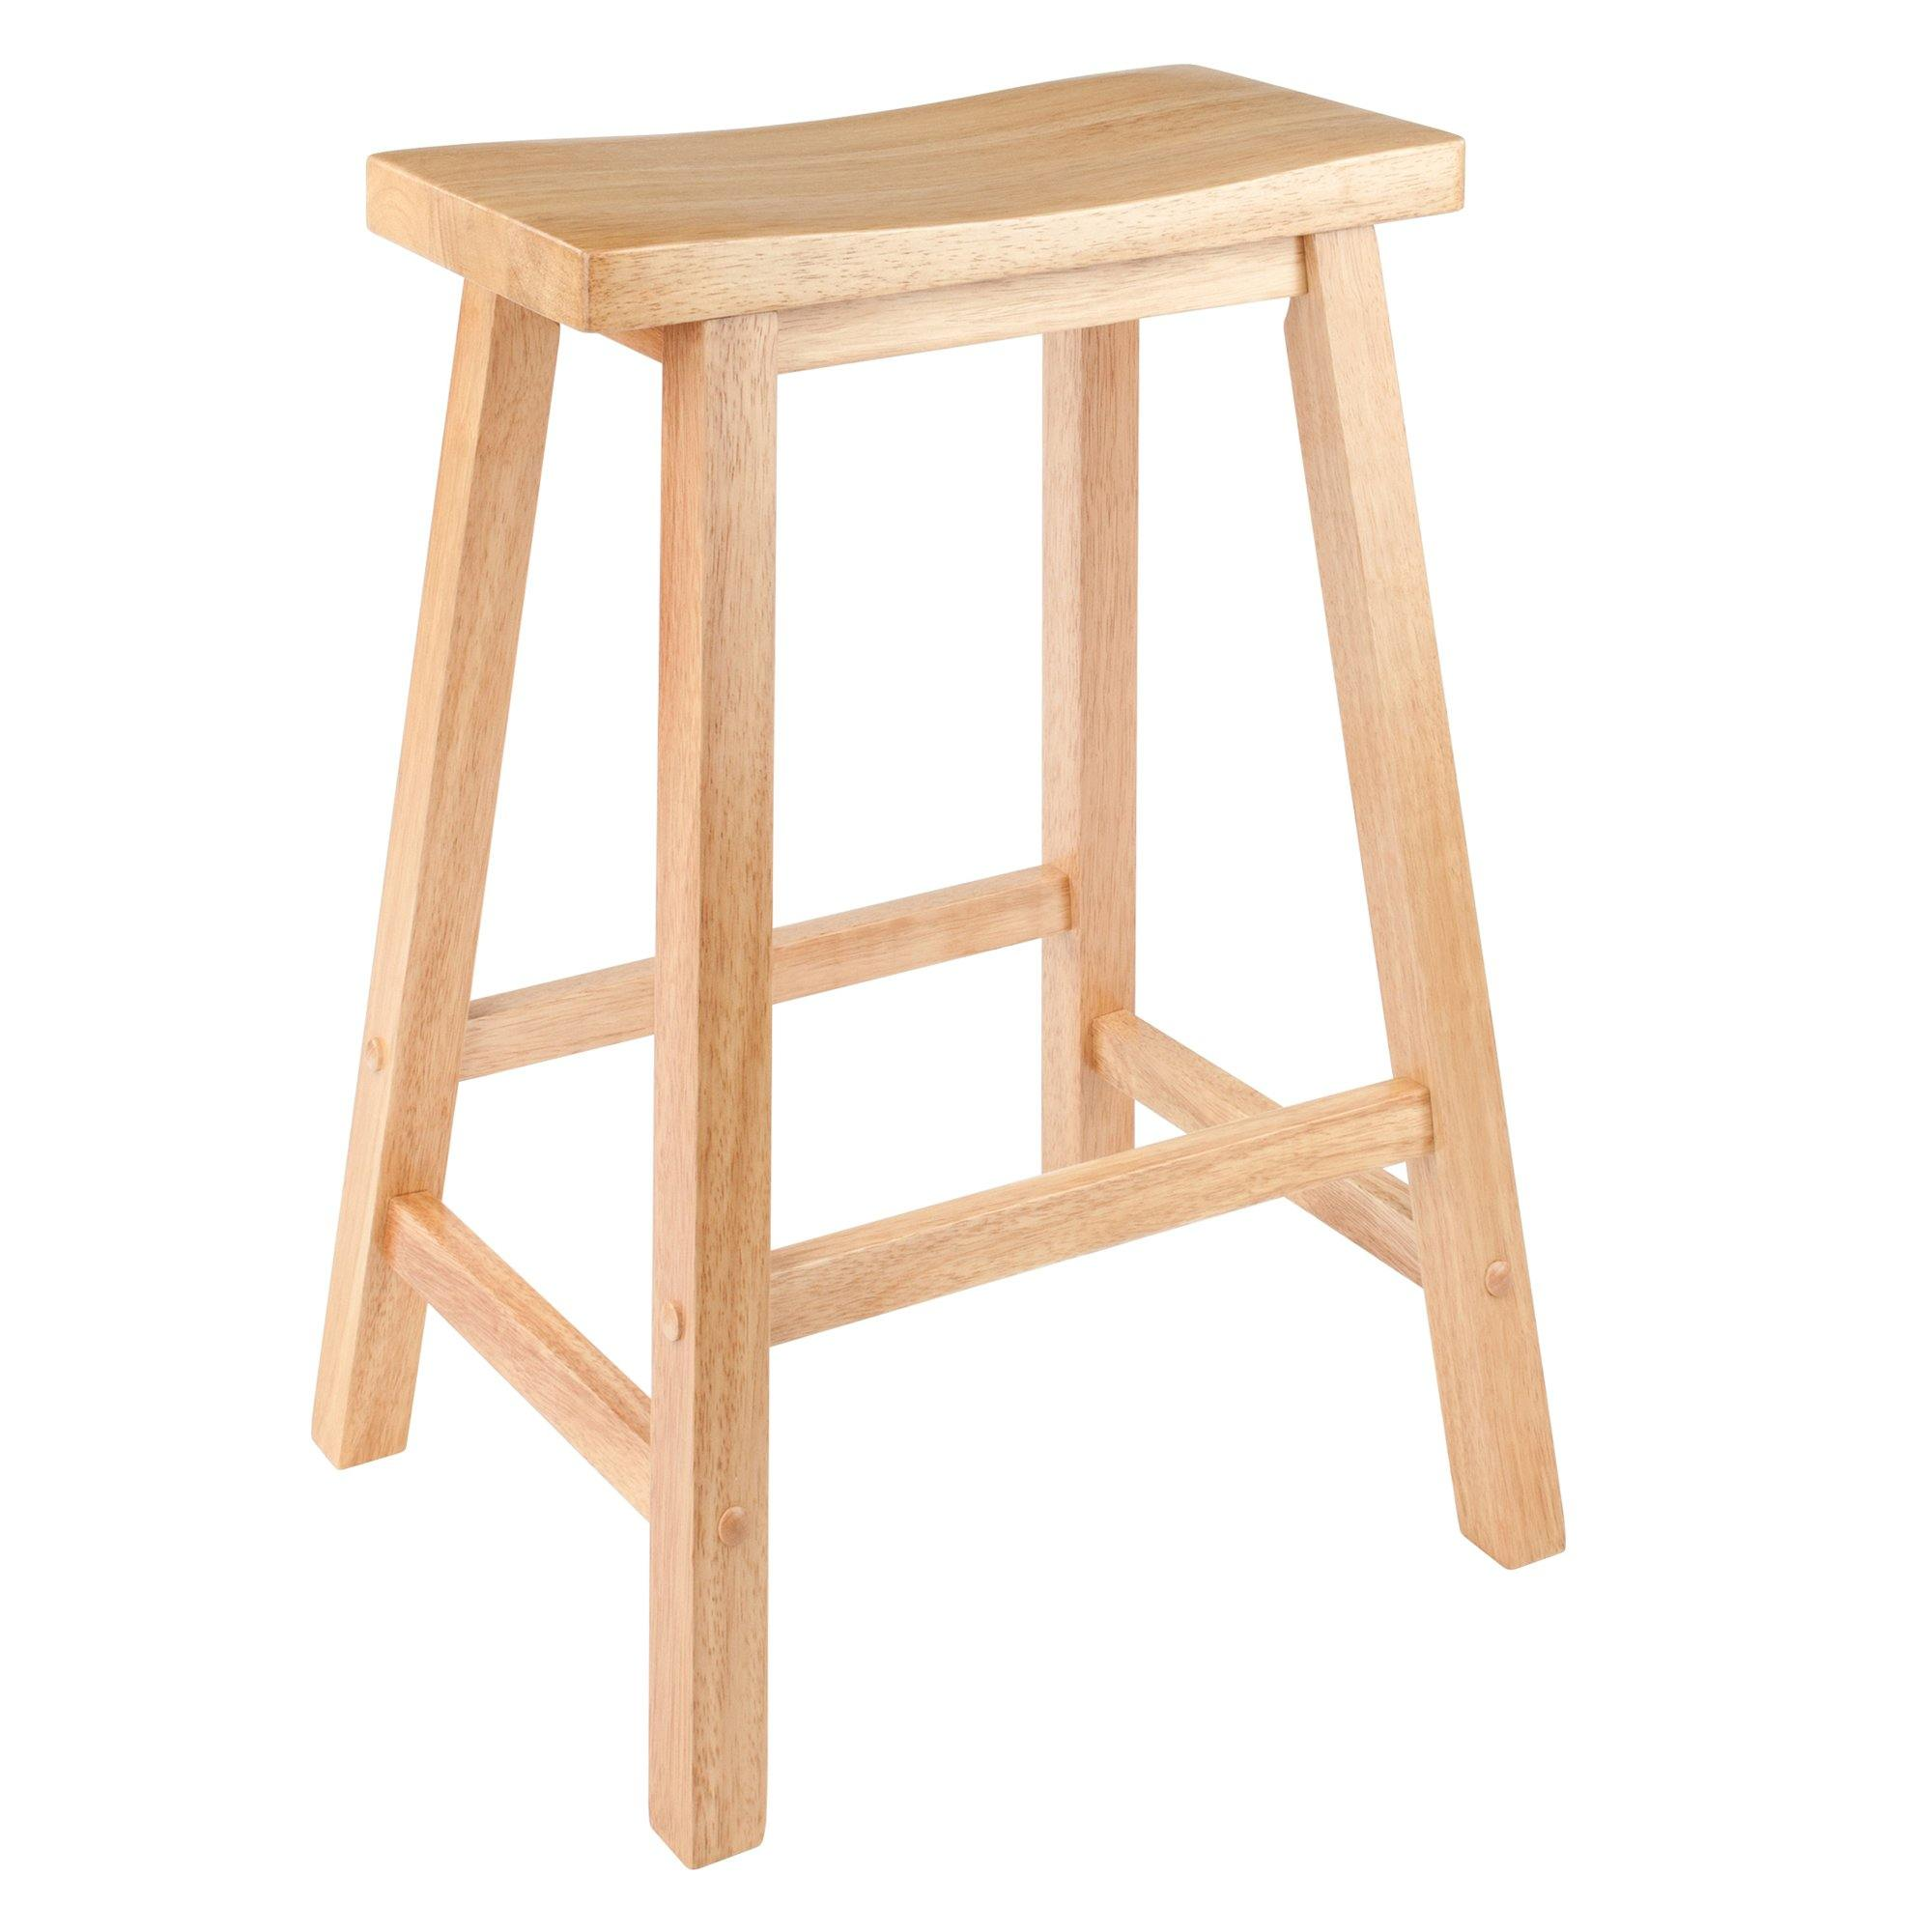 Satori Saddle Seat Counter Stool, Natural - My USA Furniture